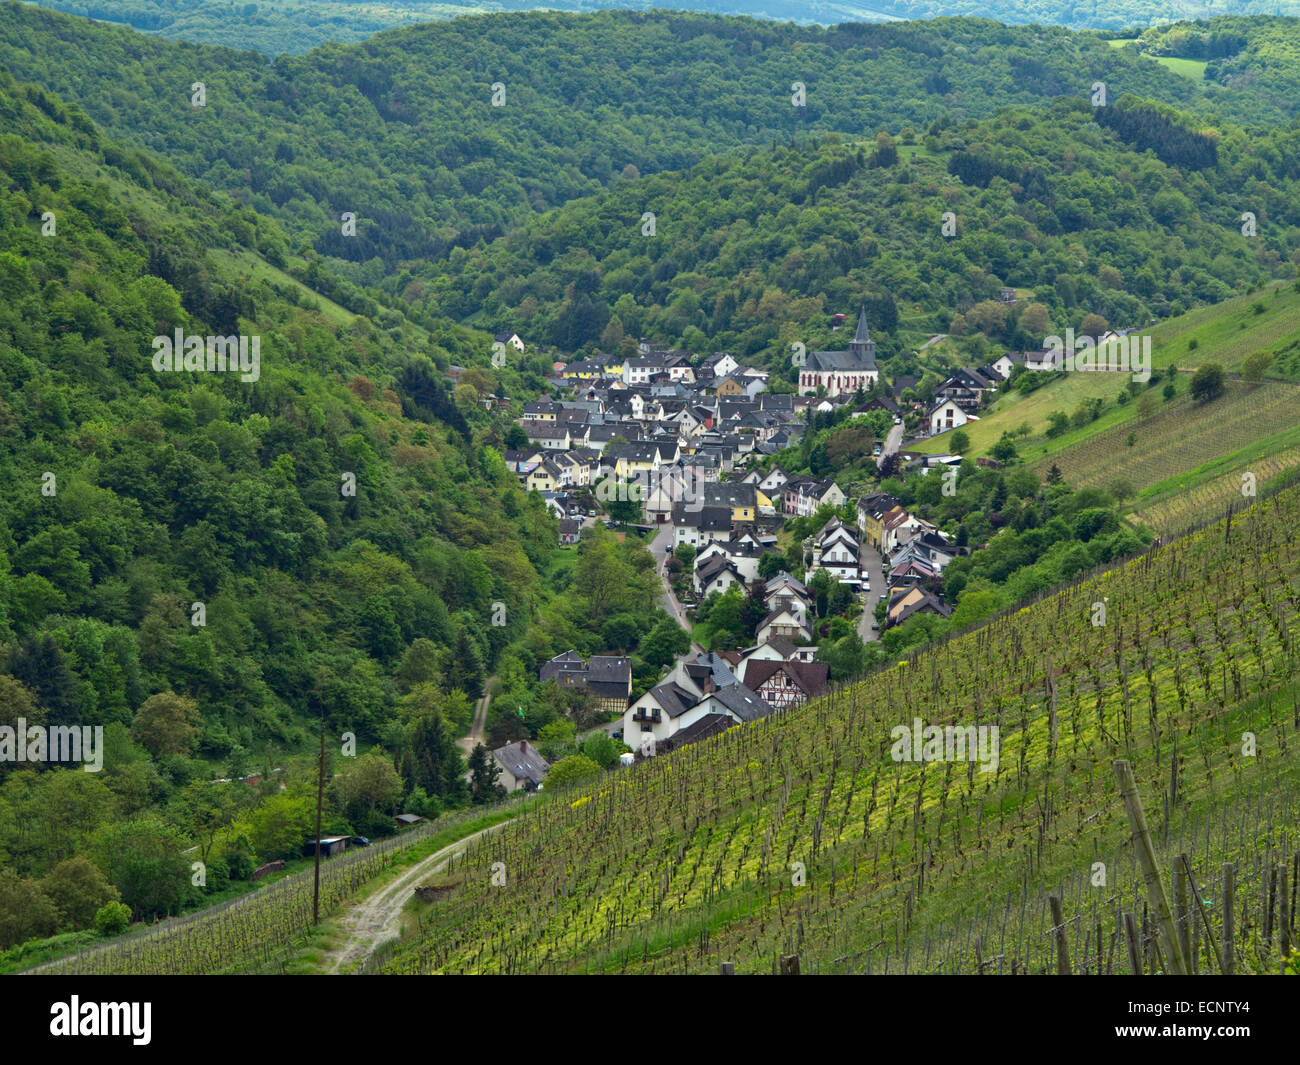 Village of Oberdiebach among the vineyards on west bank of the Rhine, upstream of Bacharach, Rhine Gorge, Germany - Stock Image